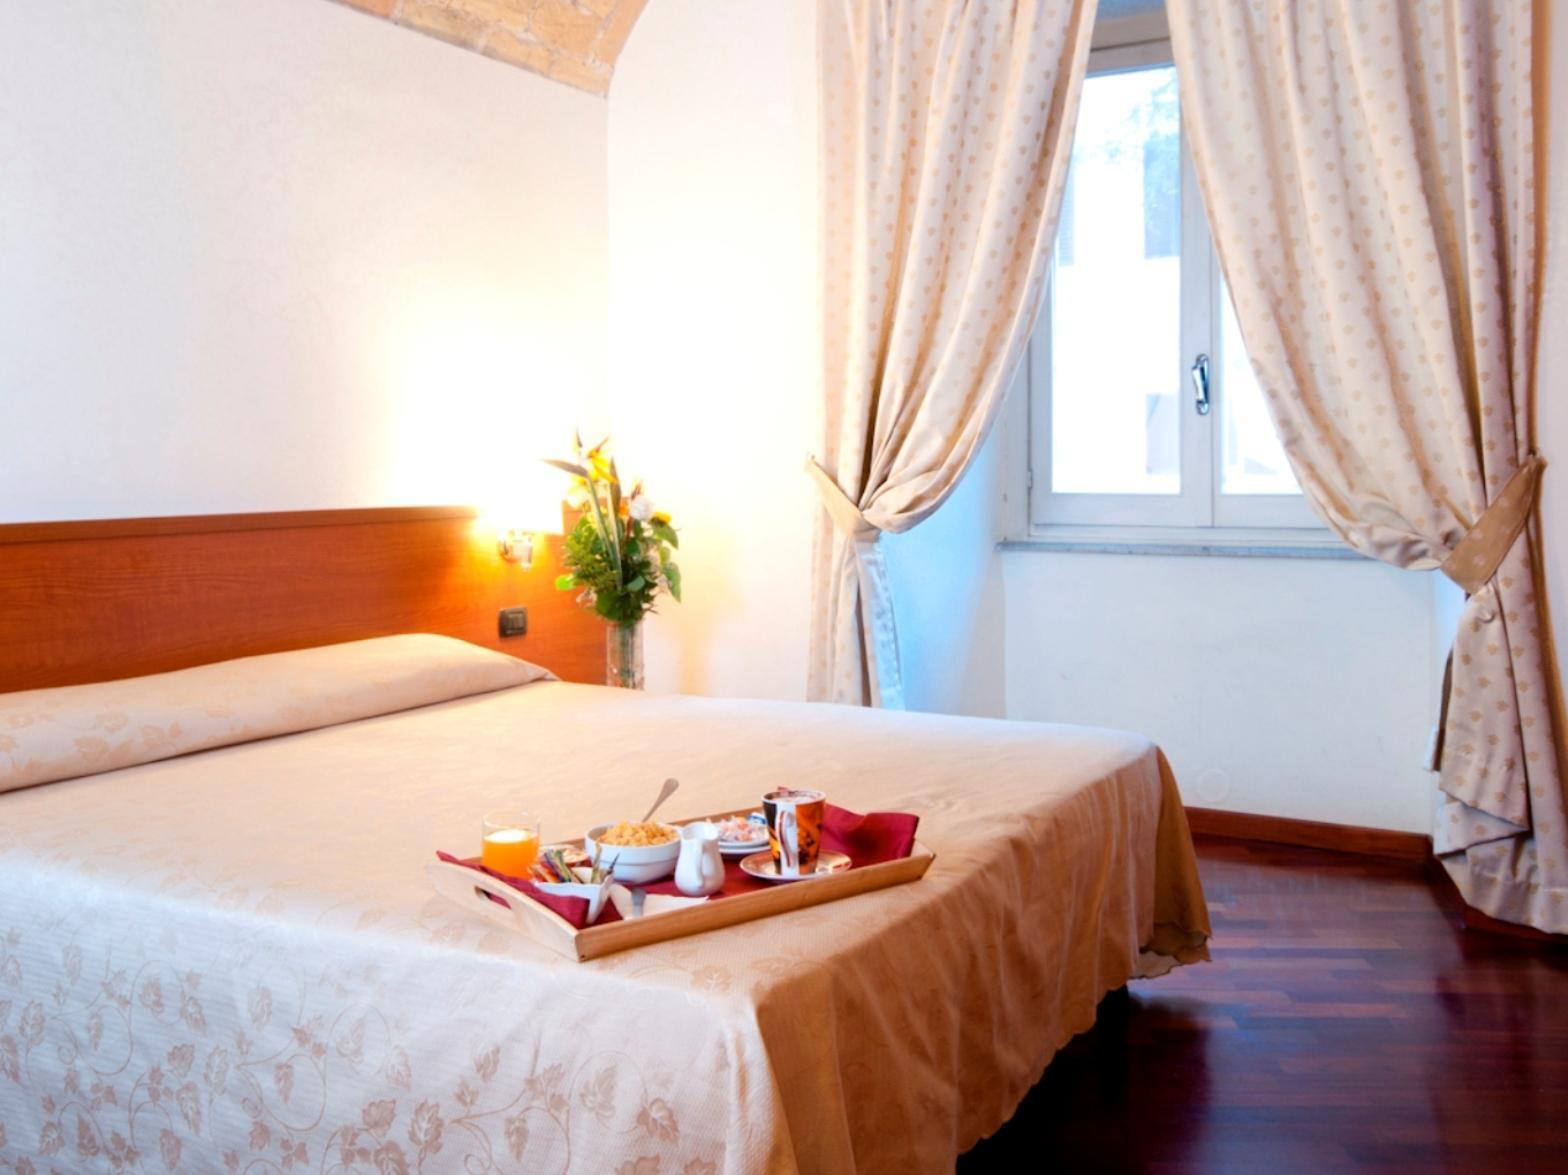 Best Price On Priscilla Hotel In Rome Reviews # Muebles Dayer Esperanza